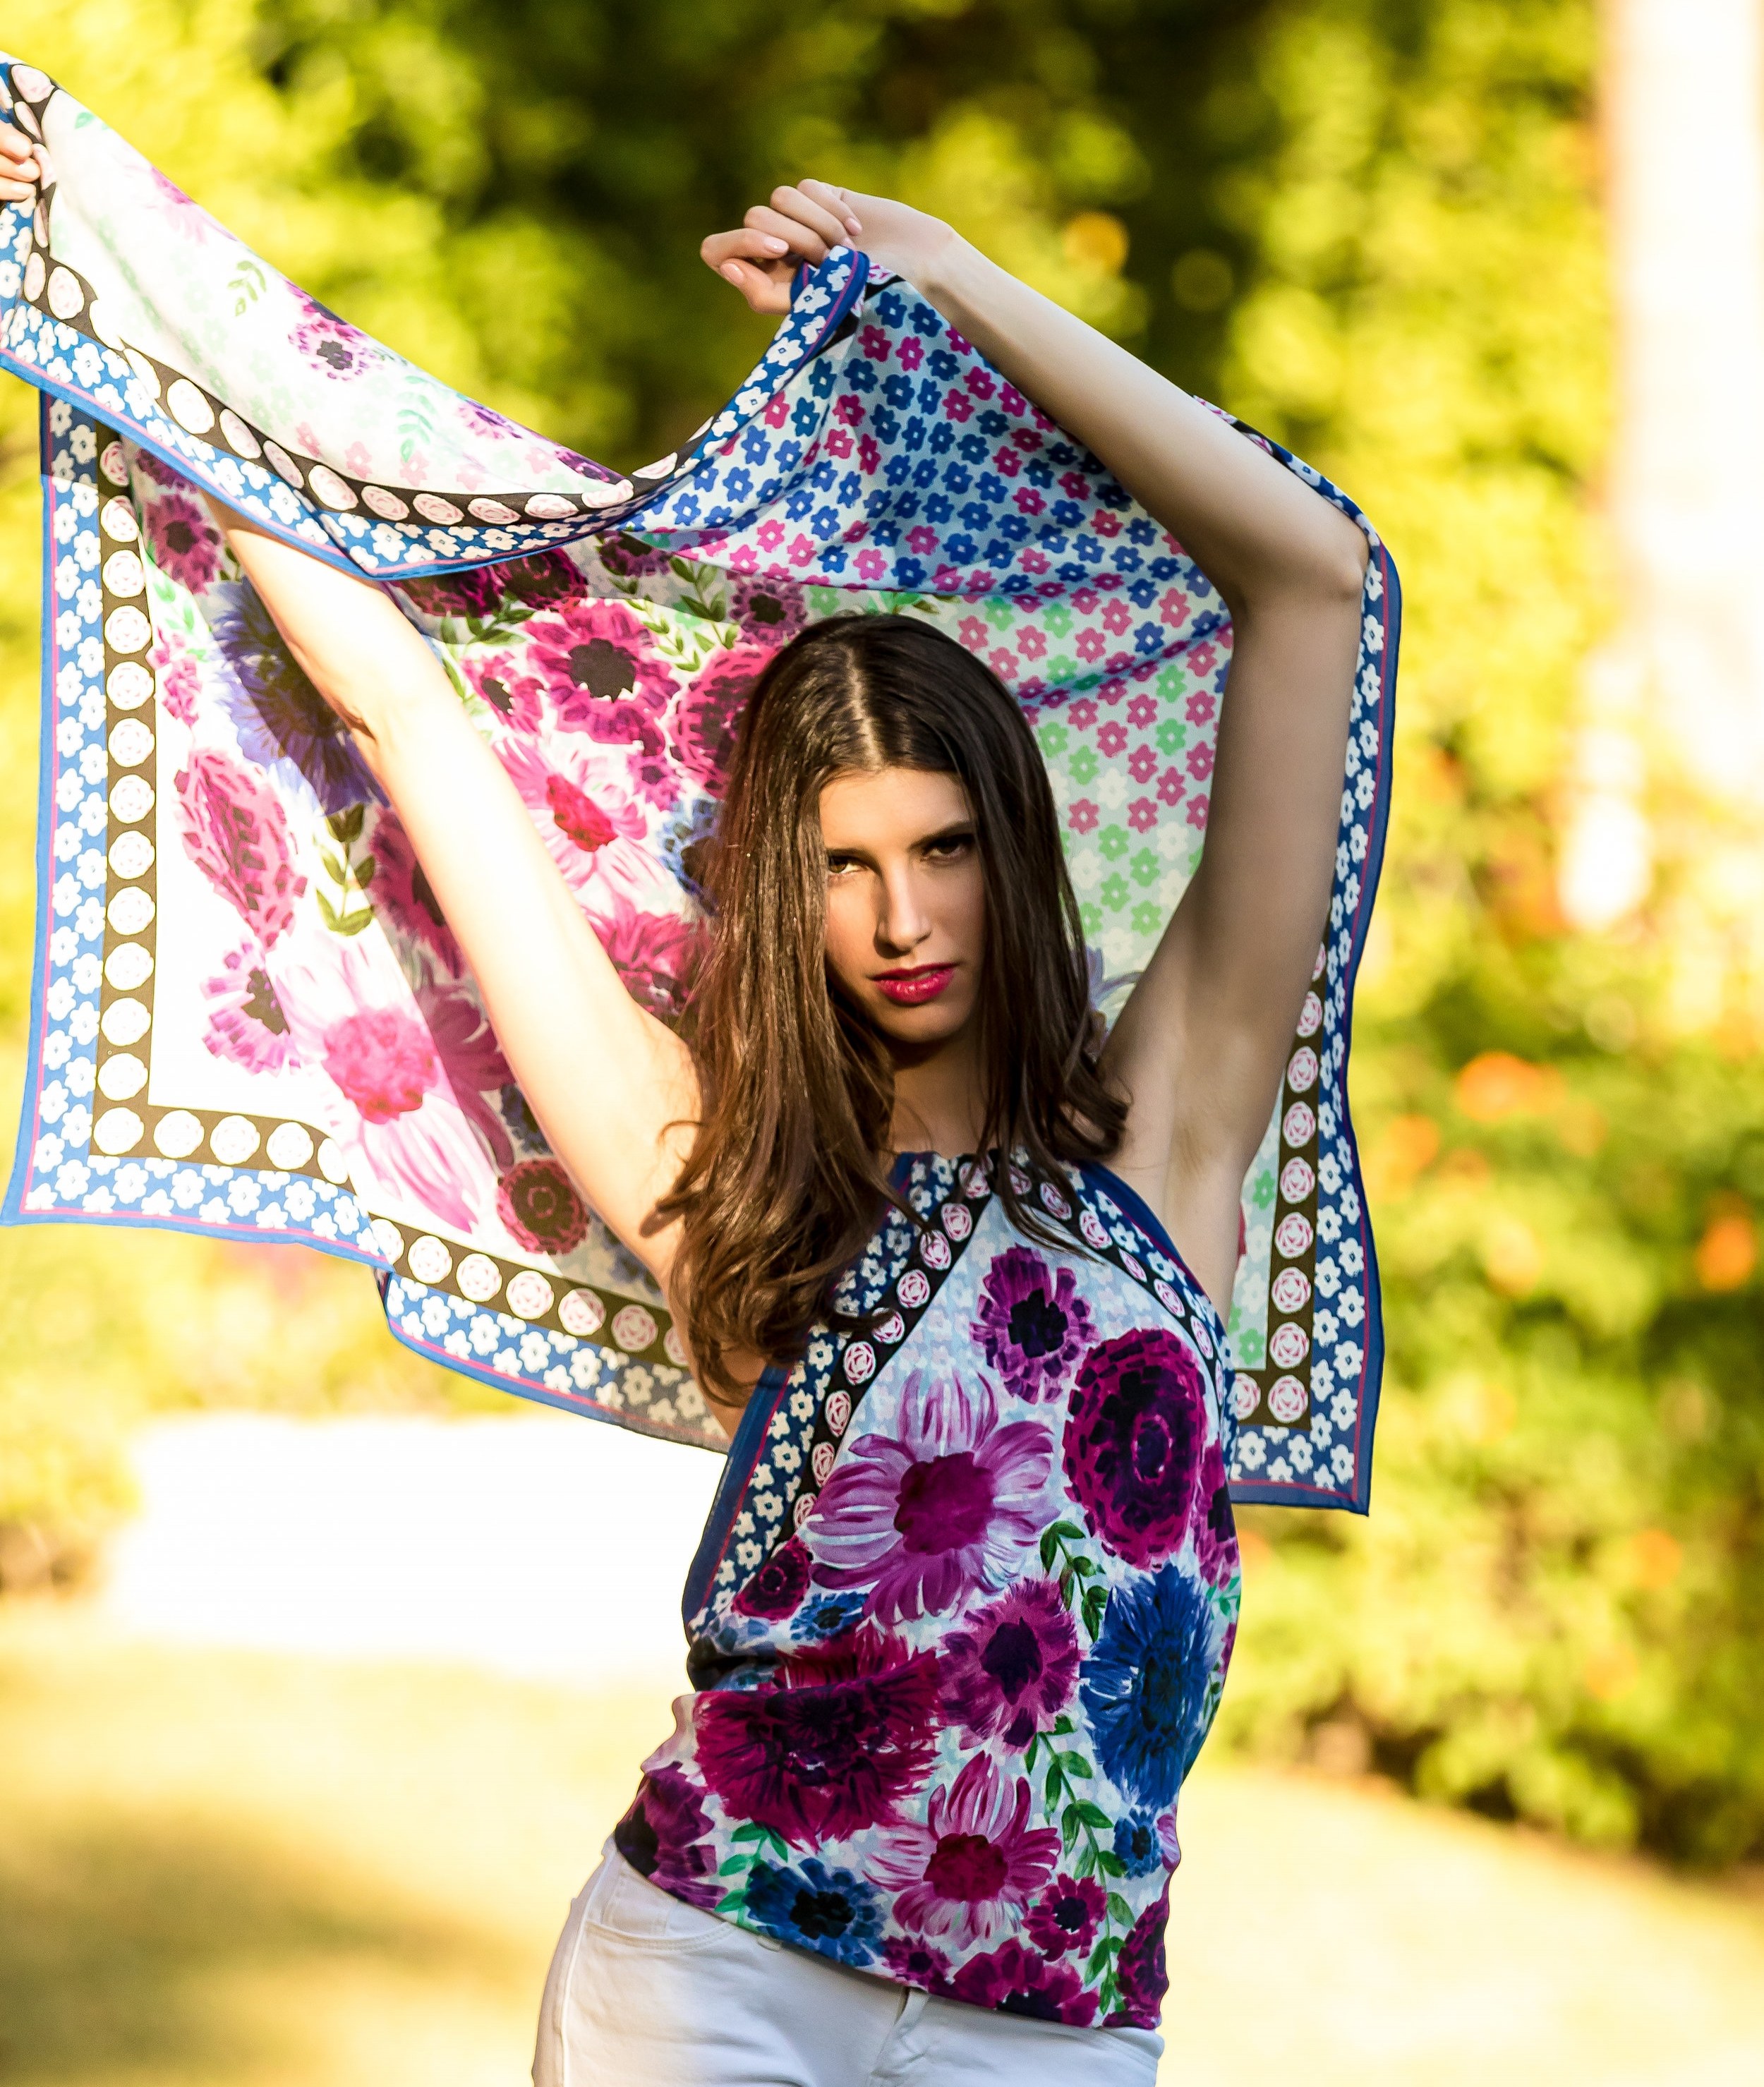 SHOP THE LOOK :  PATTI SILK SCARF HALTER TOP WITH BRASS NECK RING IN LIMITED EDITION MOROCCAN GARDEN PRINT  WITH  LARGE SQUARE SCARF IN SILK CREPE DE CHINE WITH HAND ROLLED EDGES - LIMITED EDITION MOROCCAN GARDEN PRINT